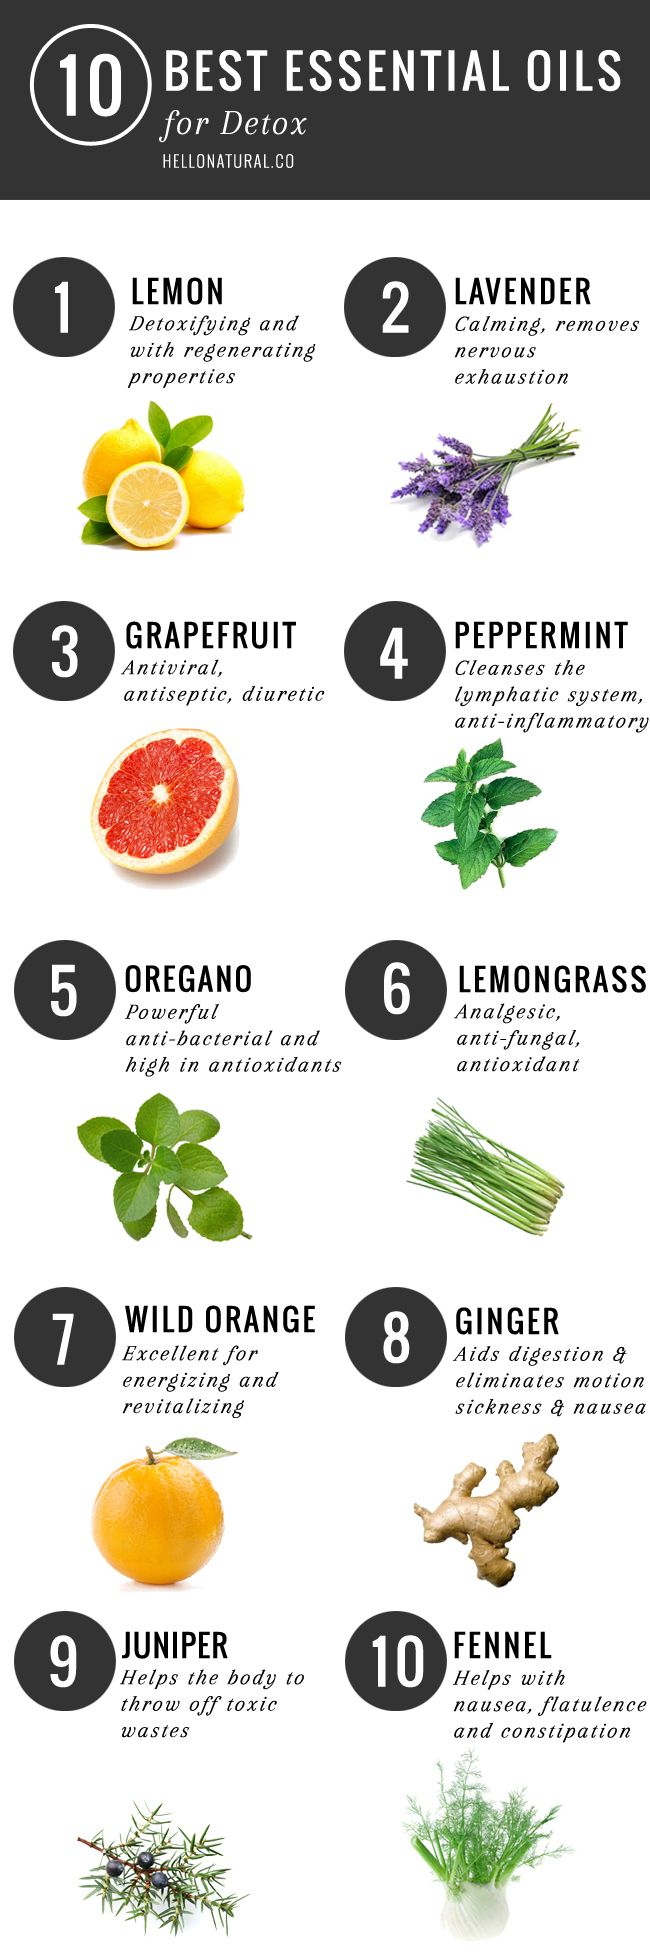 10 Best Essential Oils for Detox |